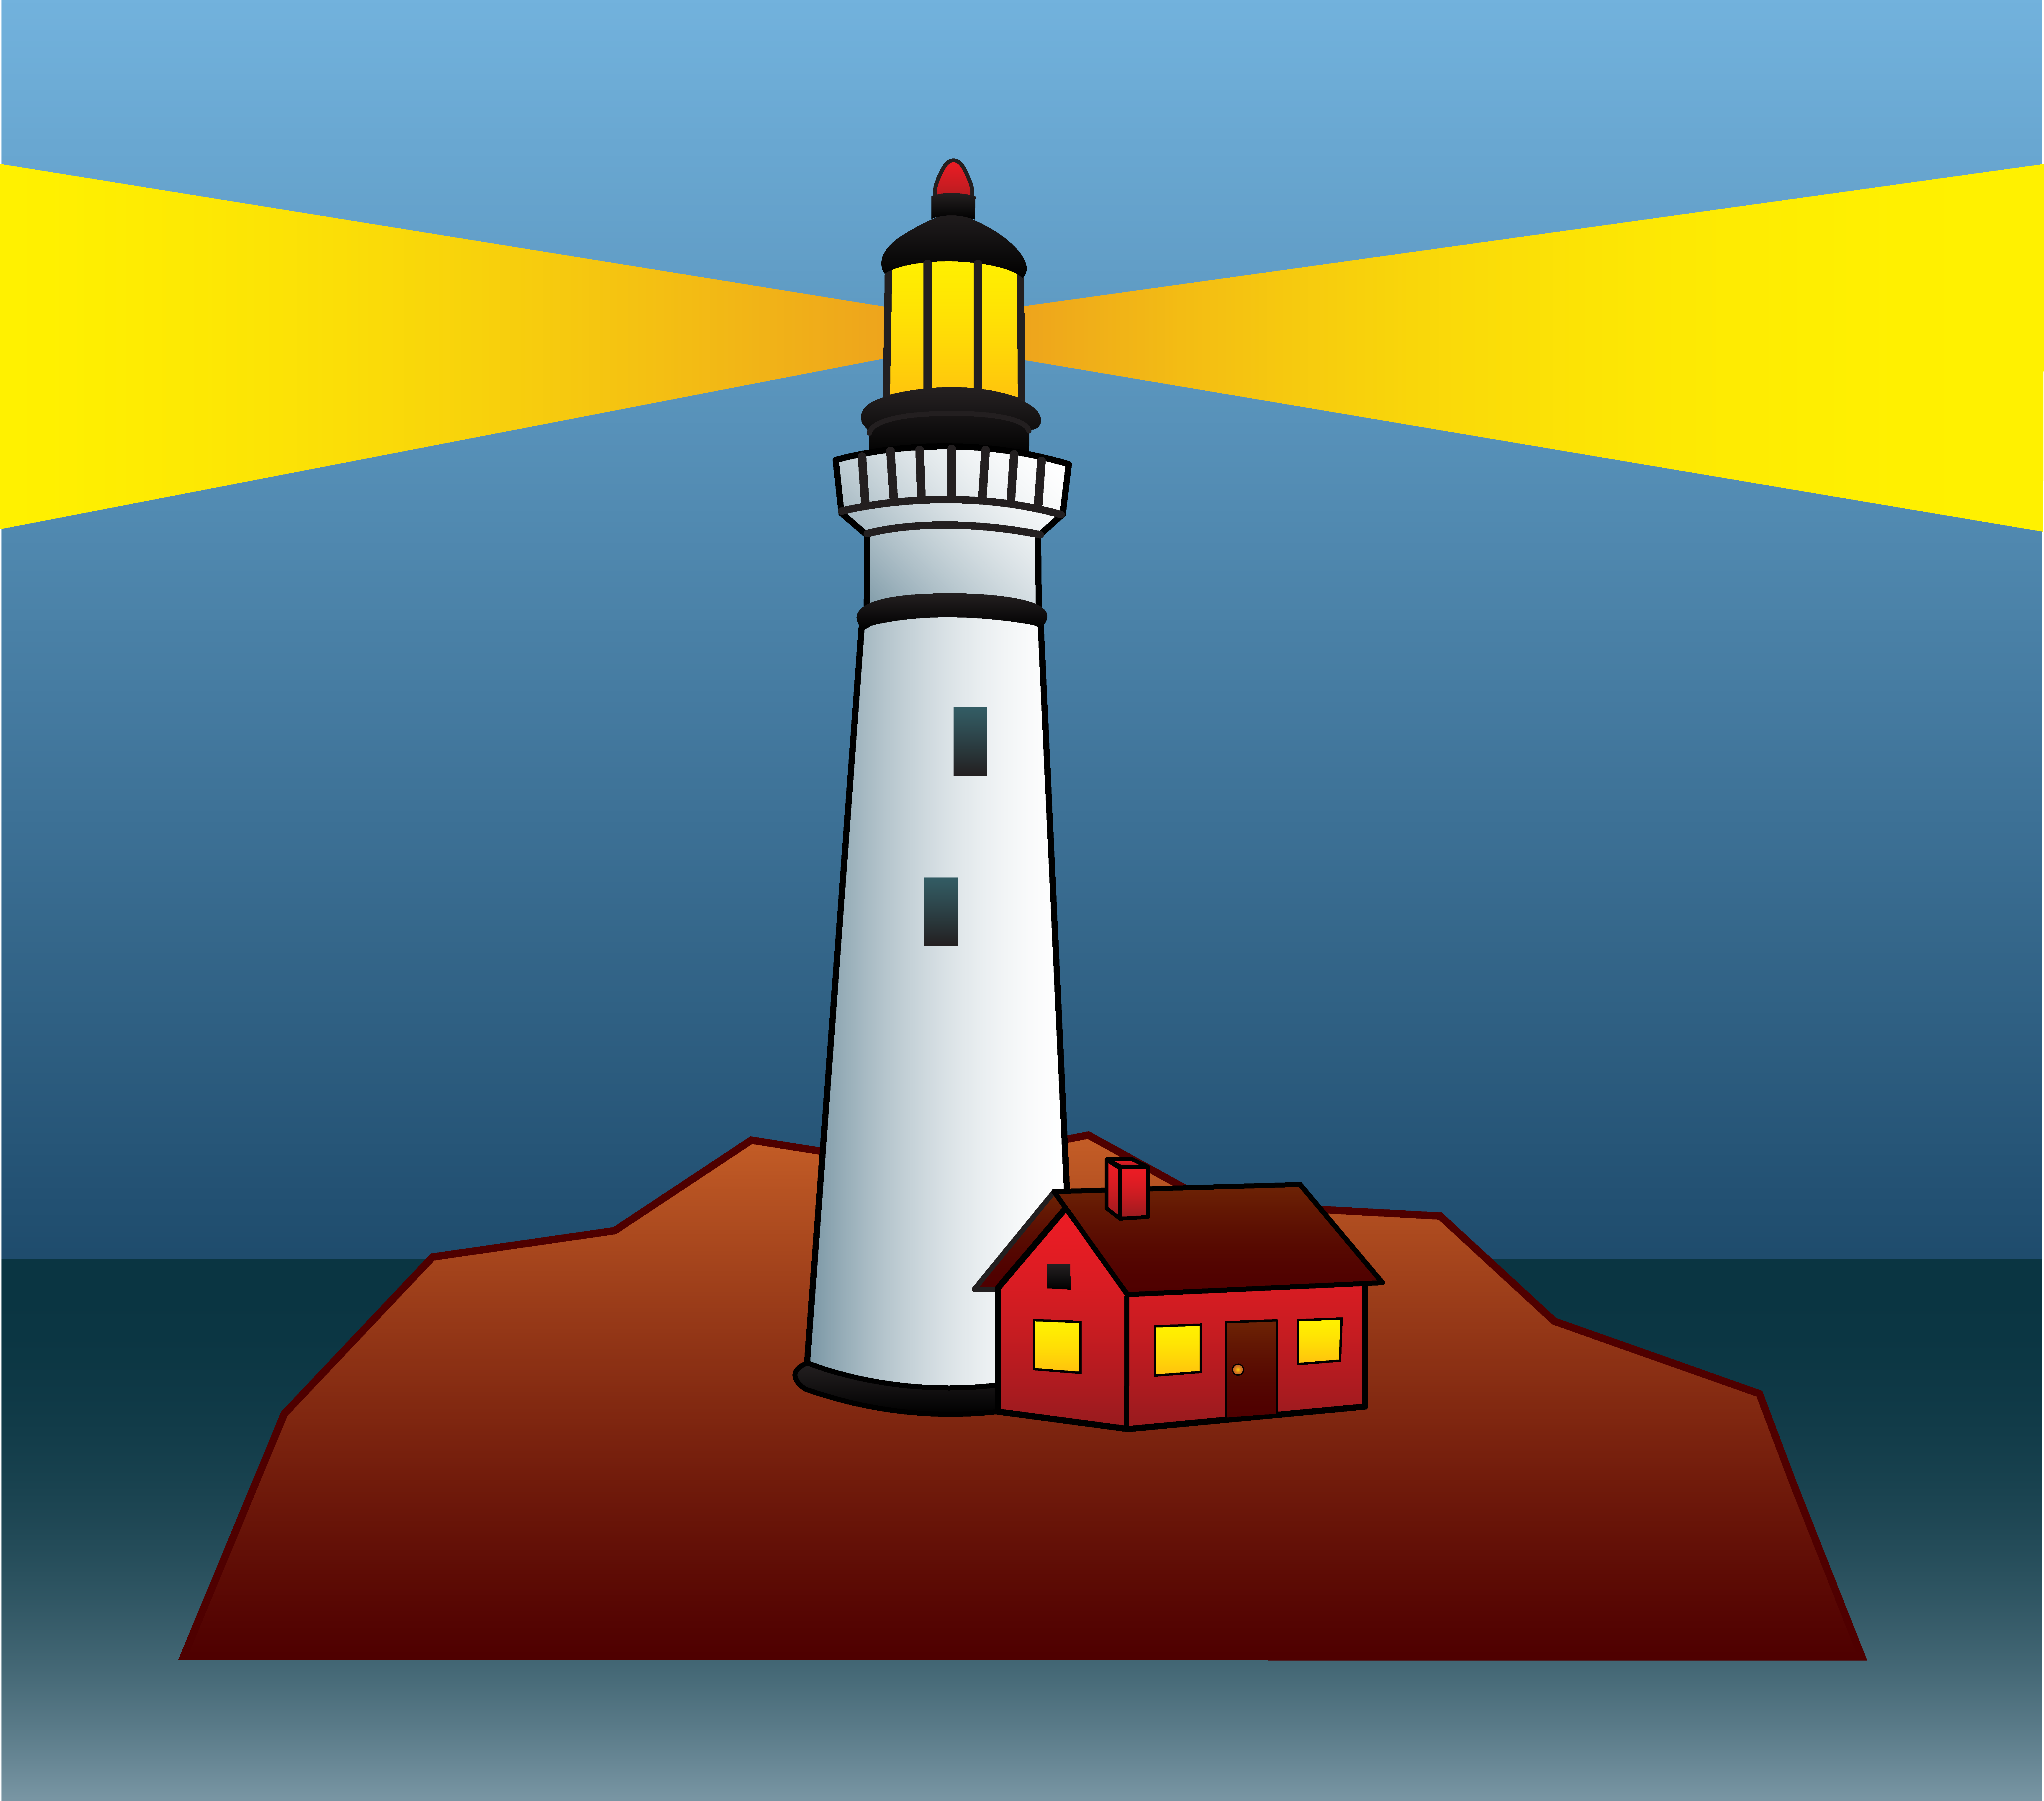 Lighthouse Shining Light At Night - Free Clip Art